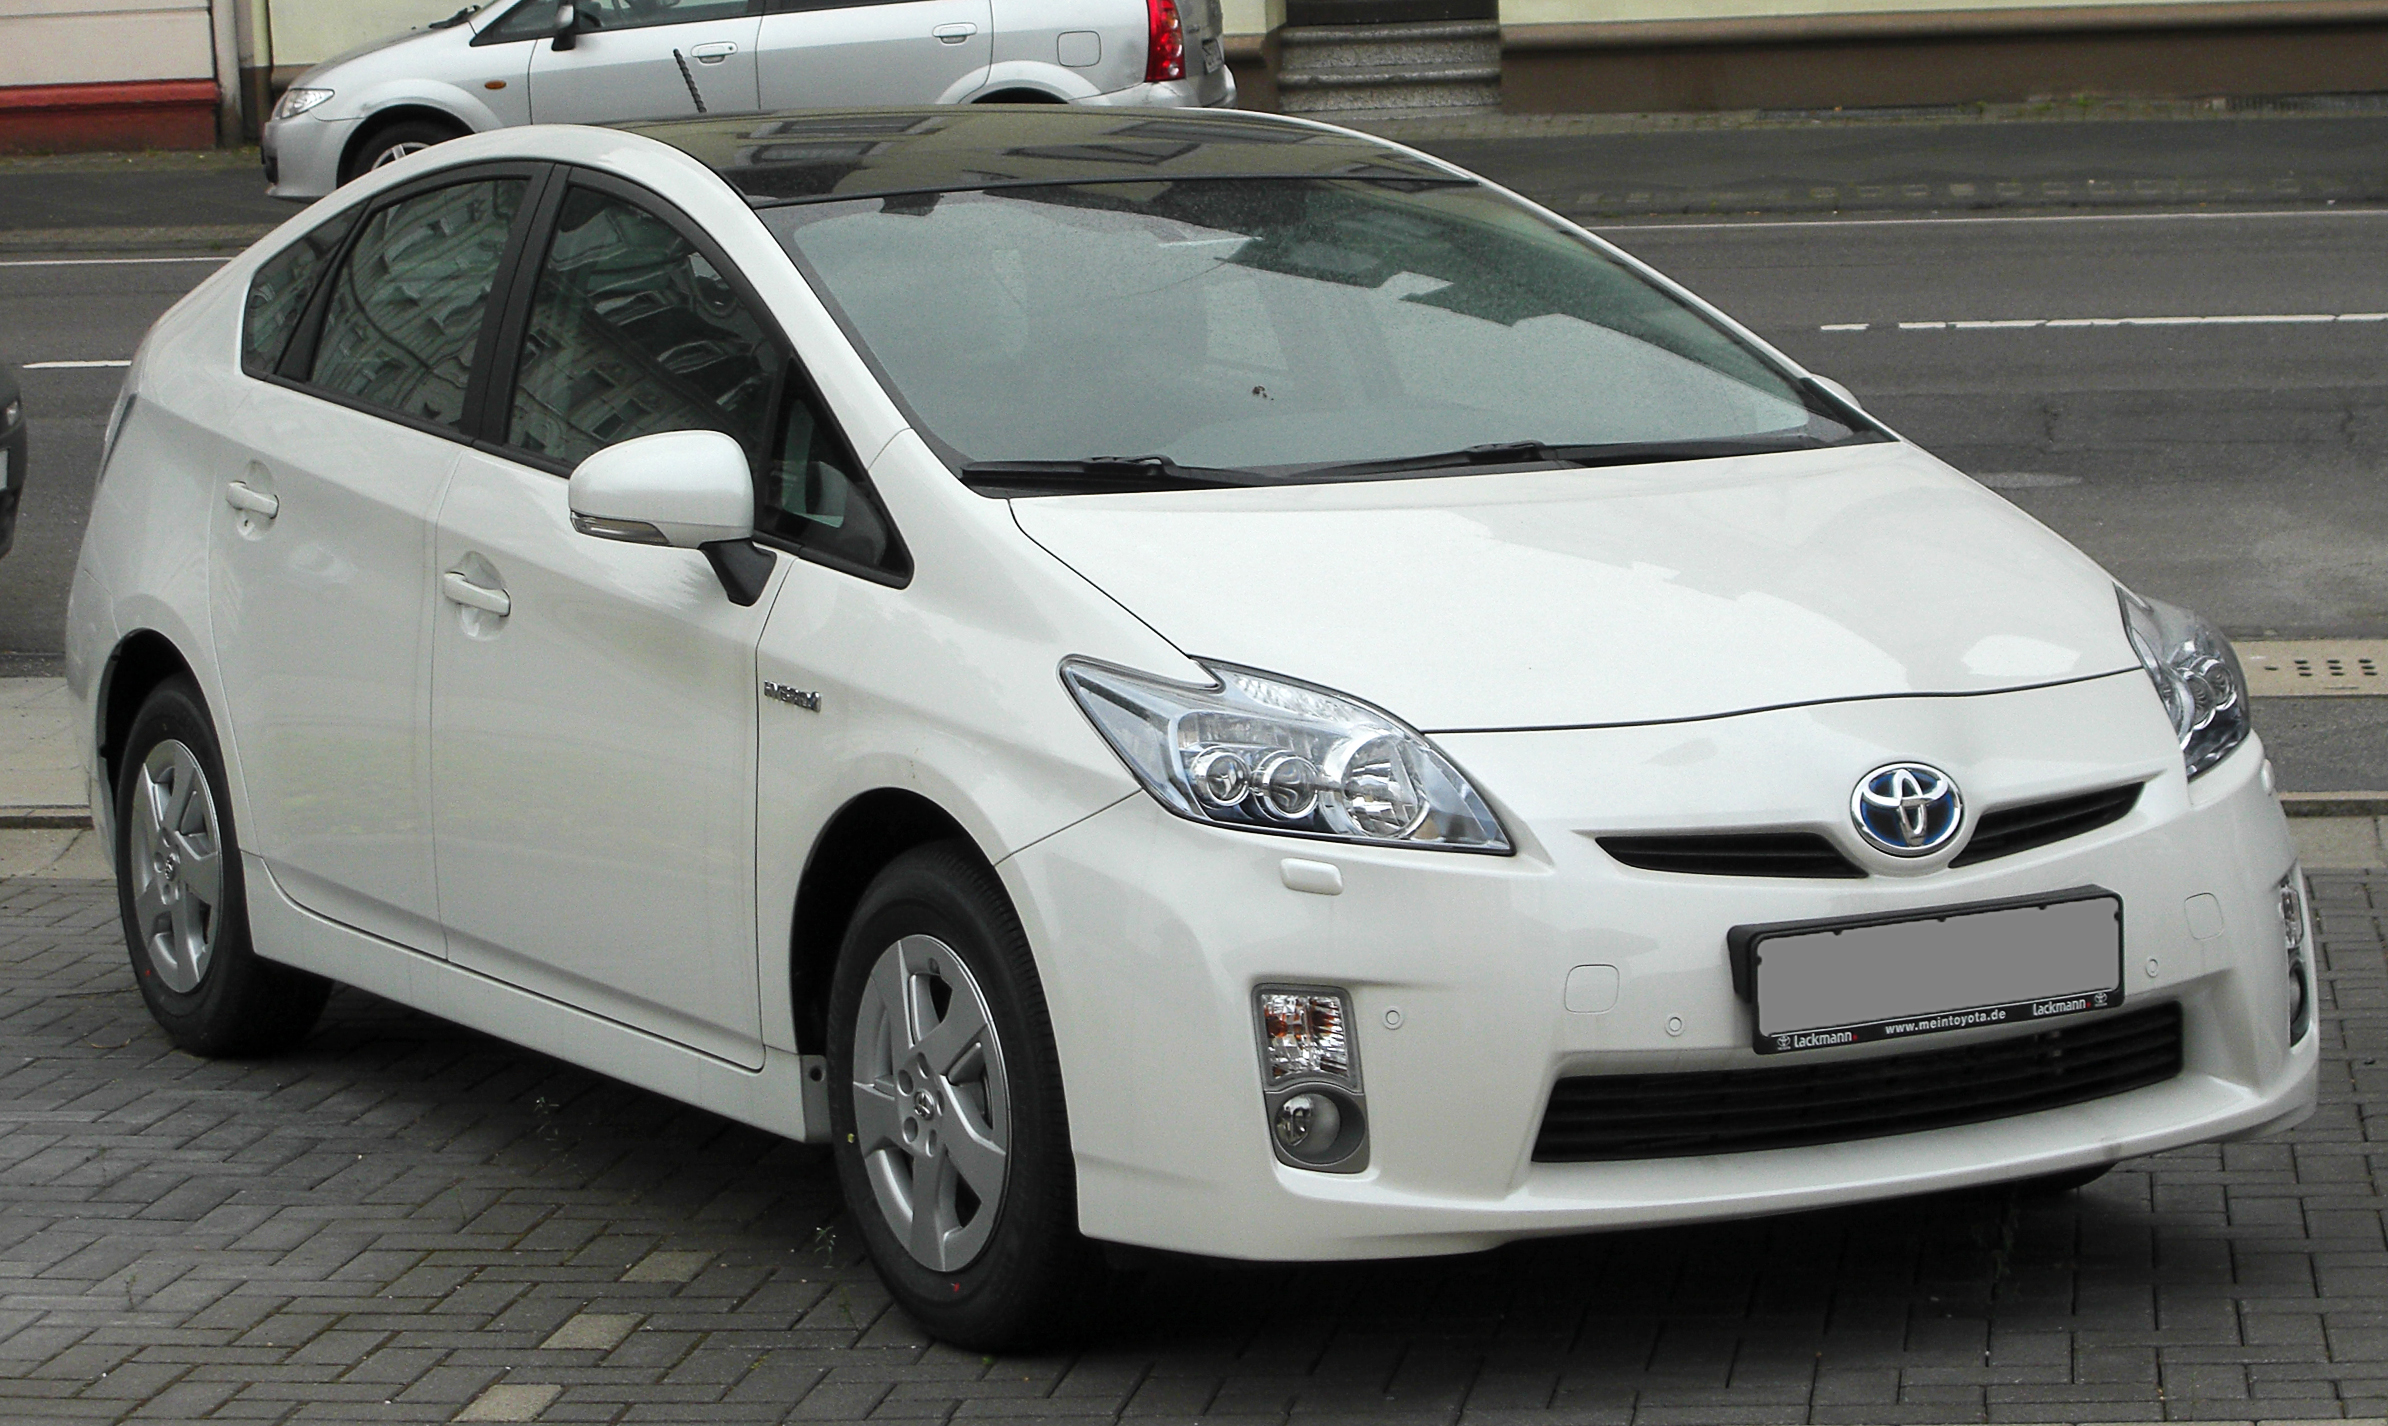 Toyota Prius Pictures Information And Specs Hyundai H200 Wiring Diagram 15